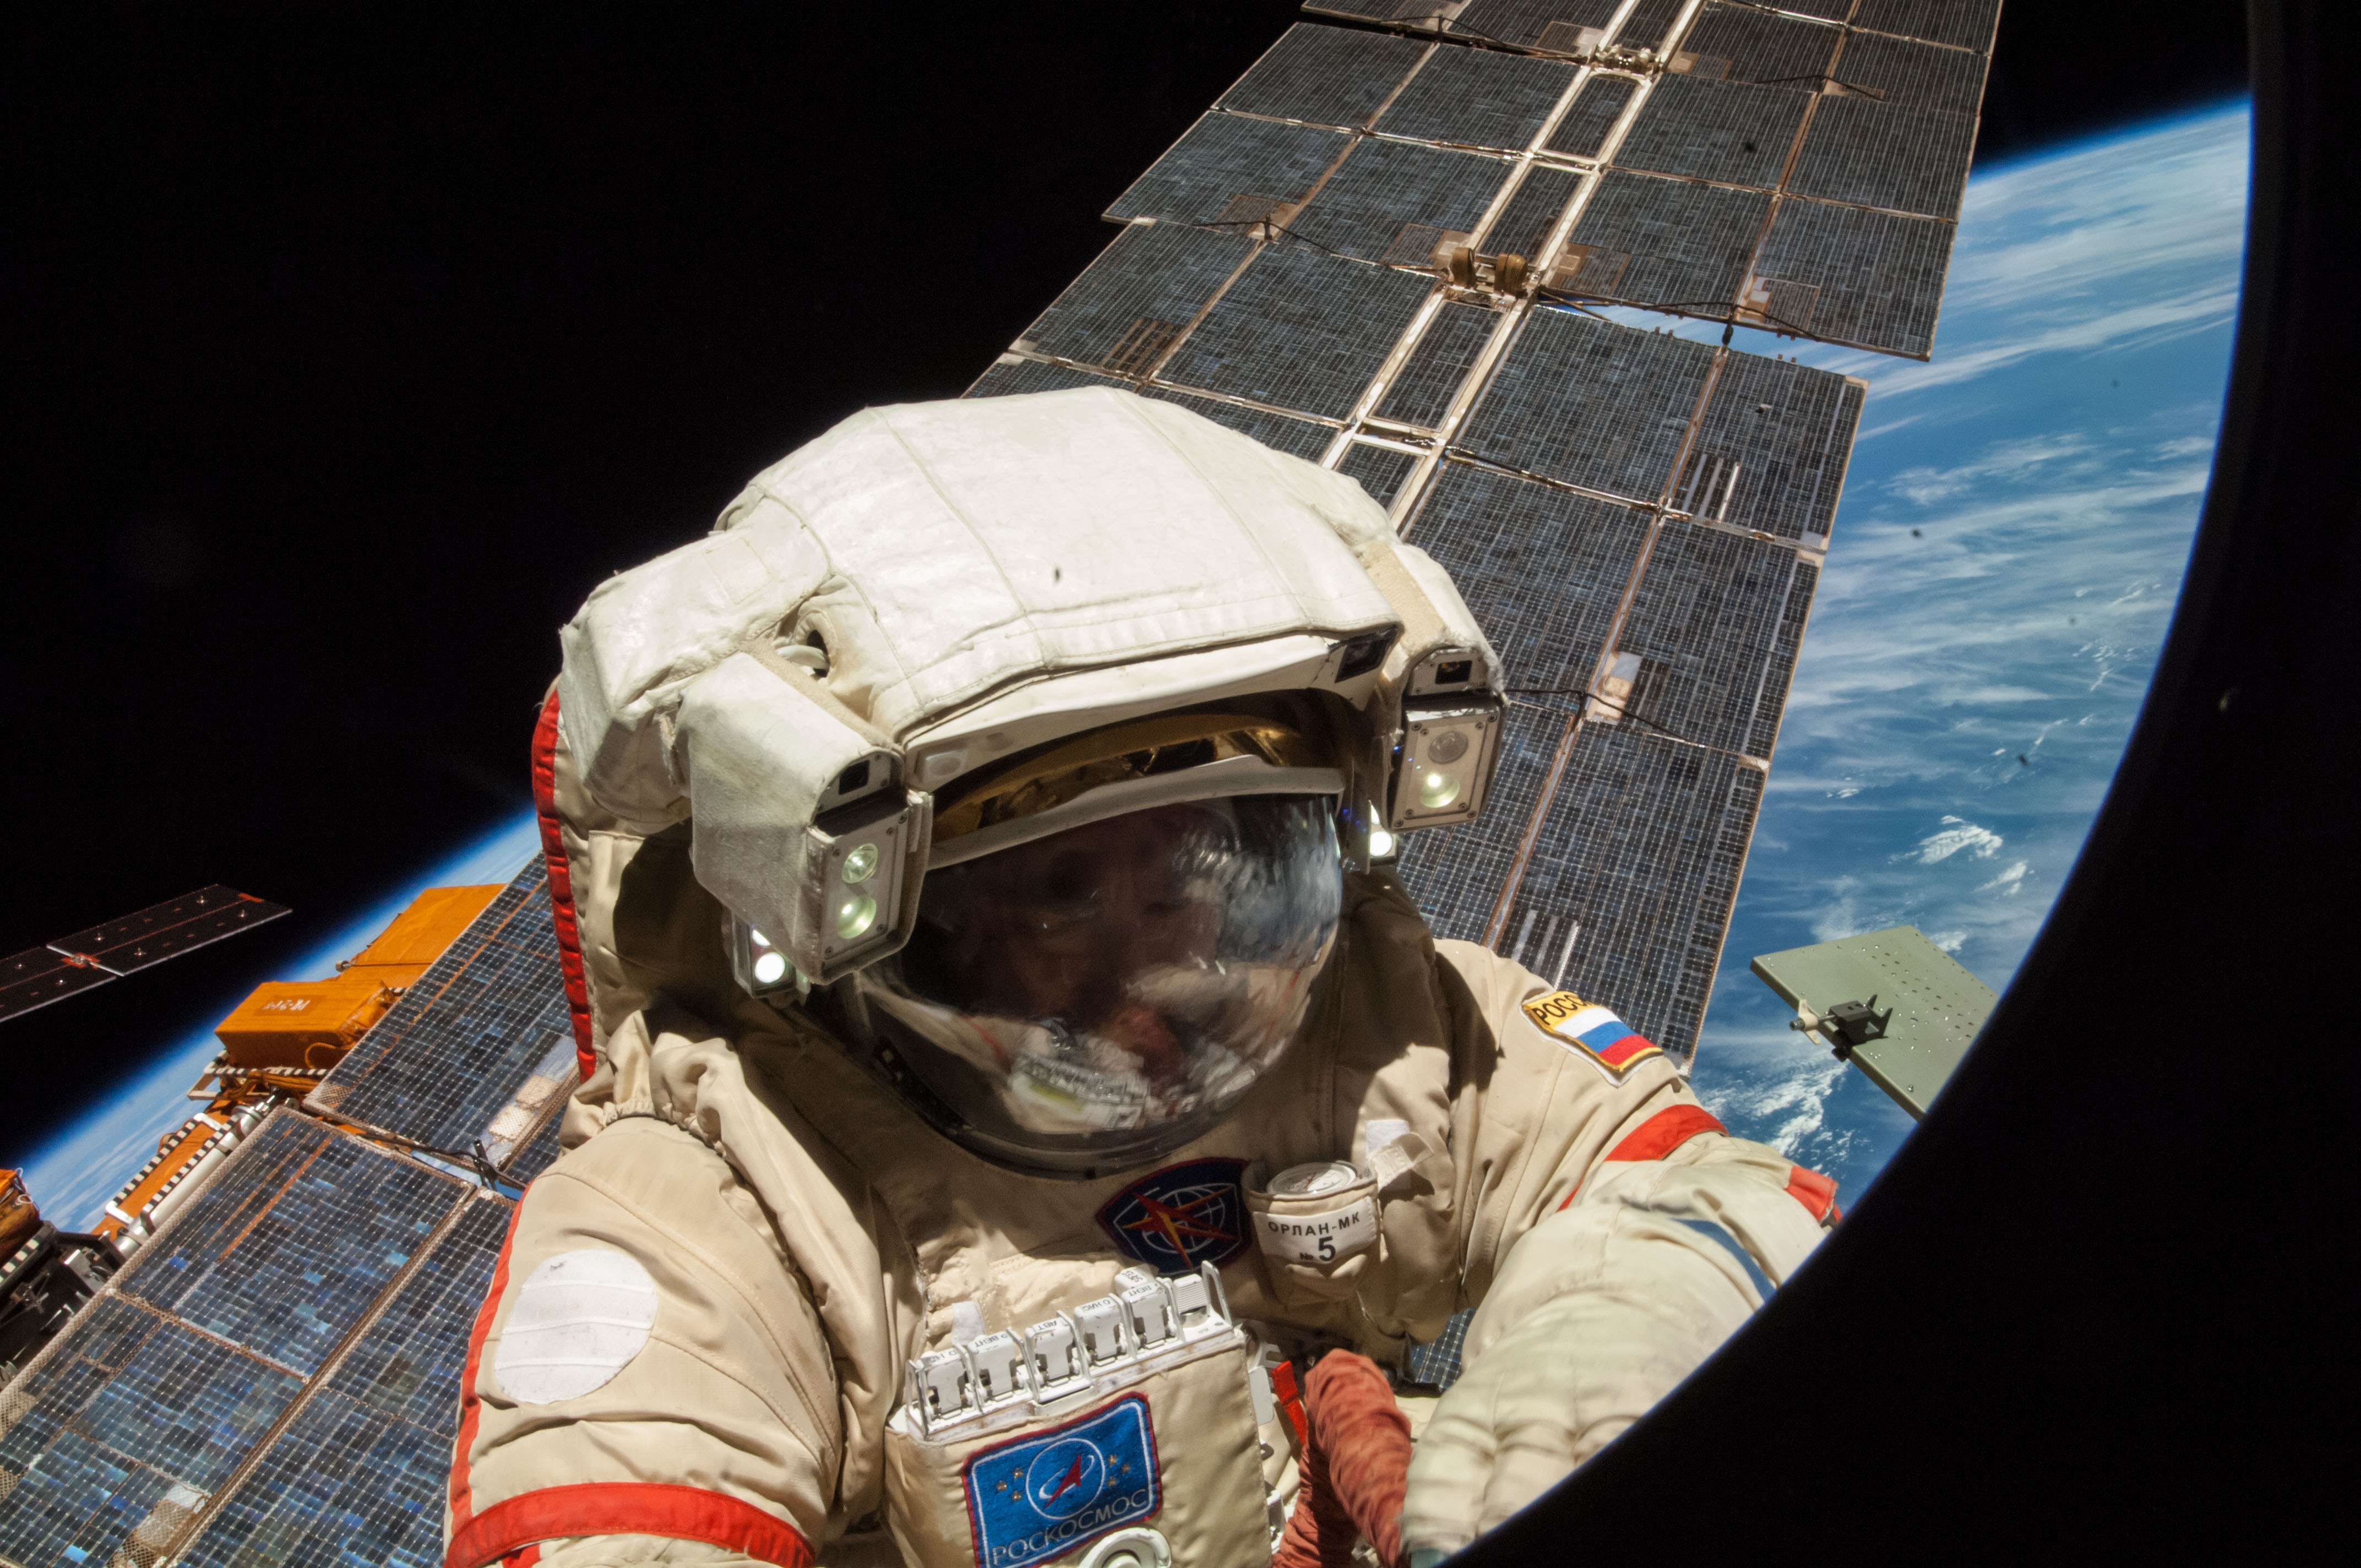 russian astronaut in space - photo #15